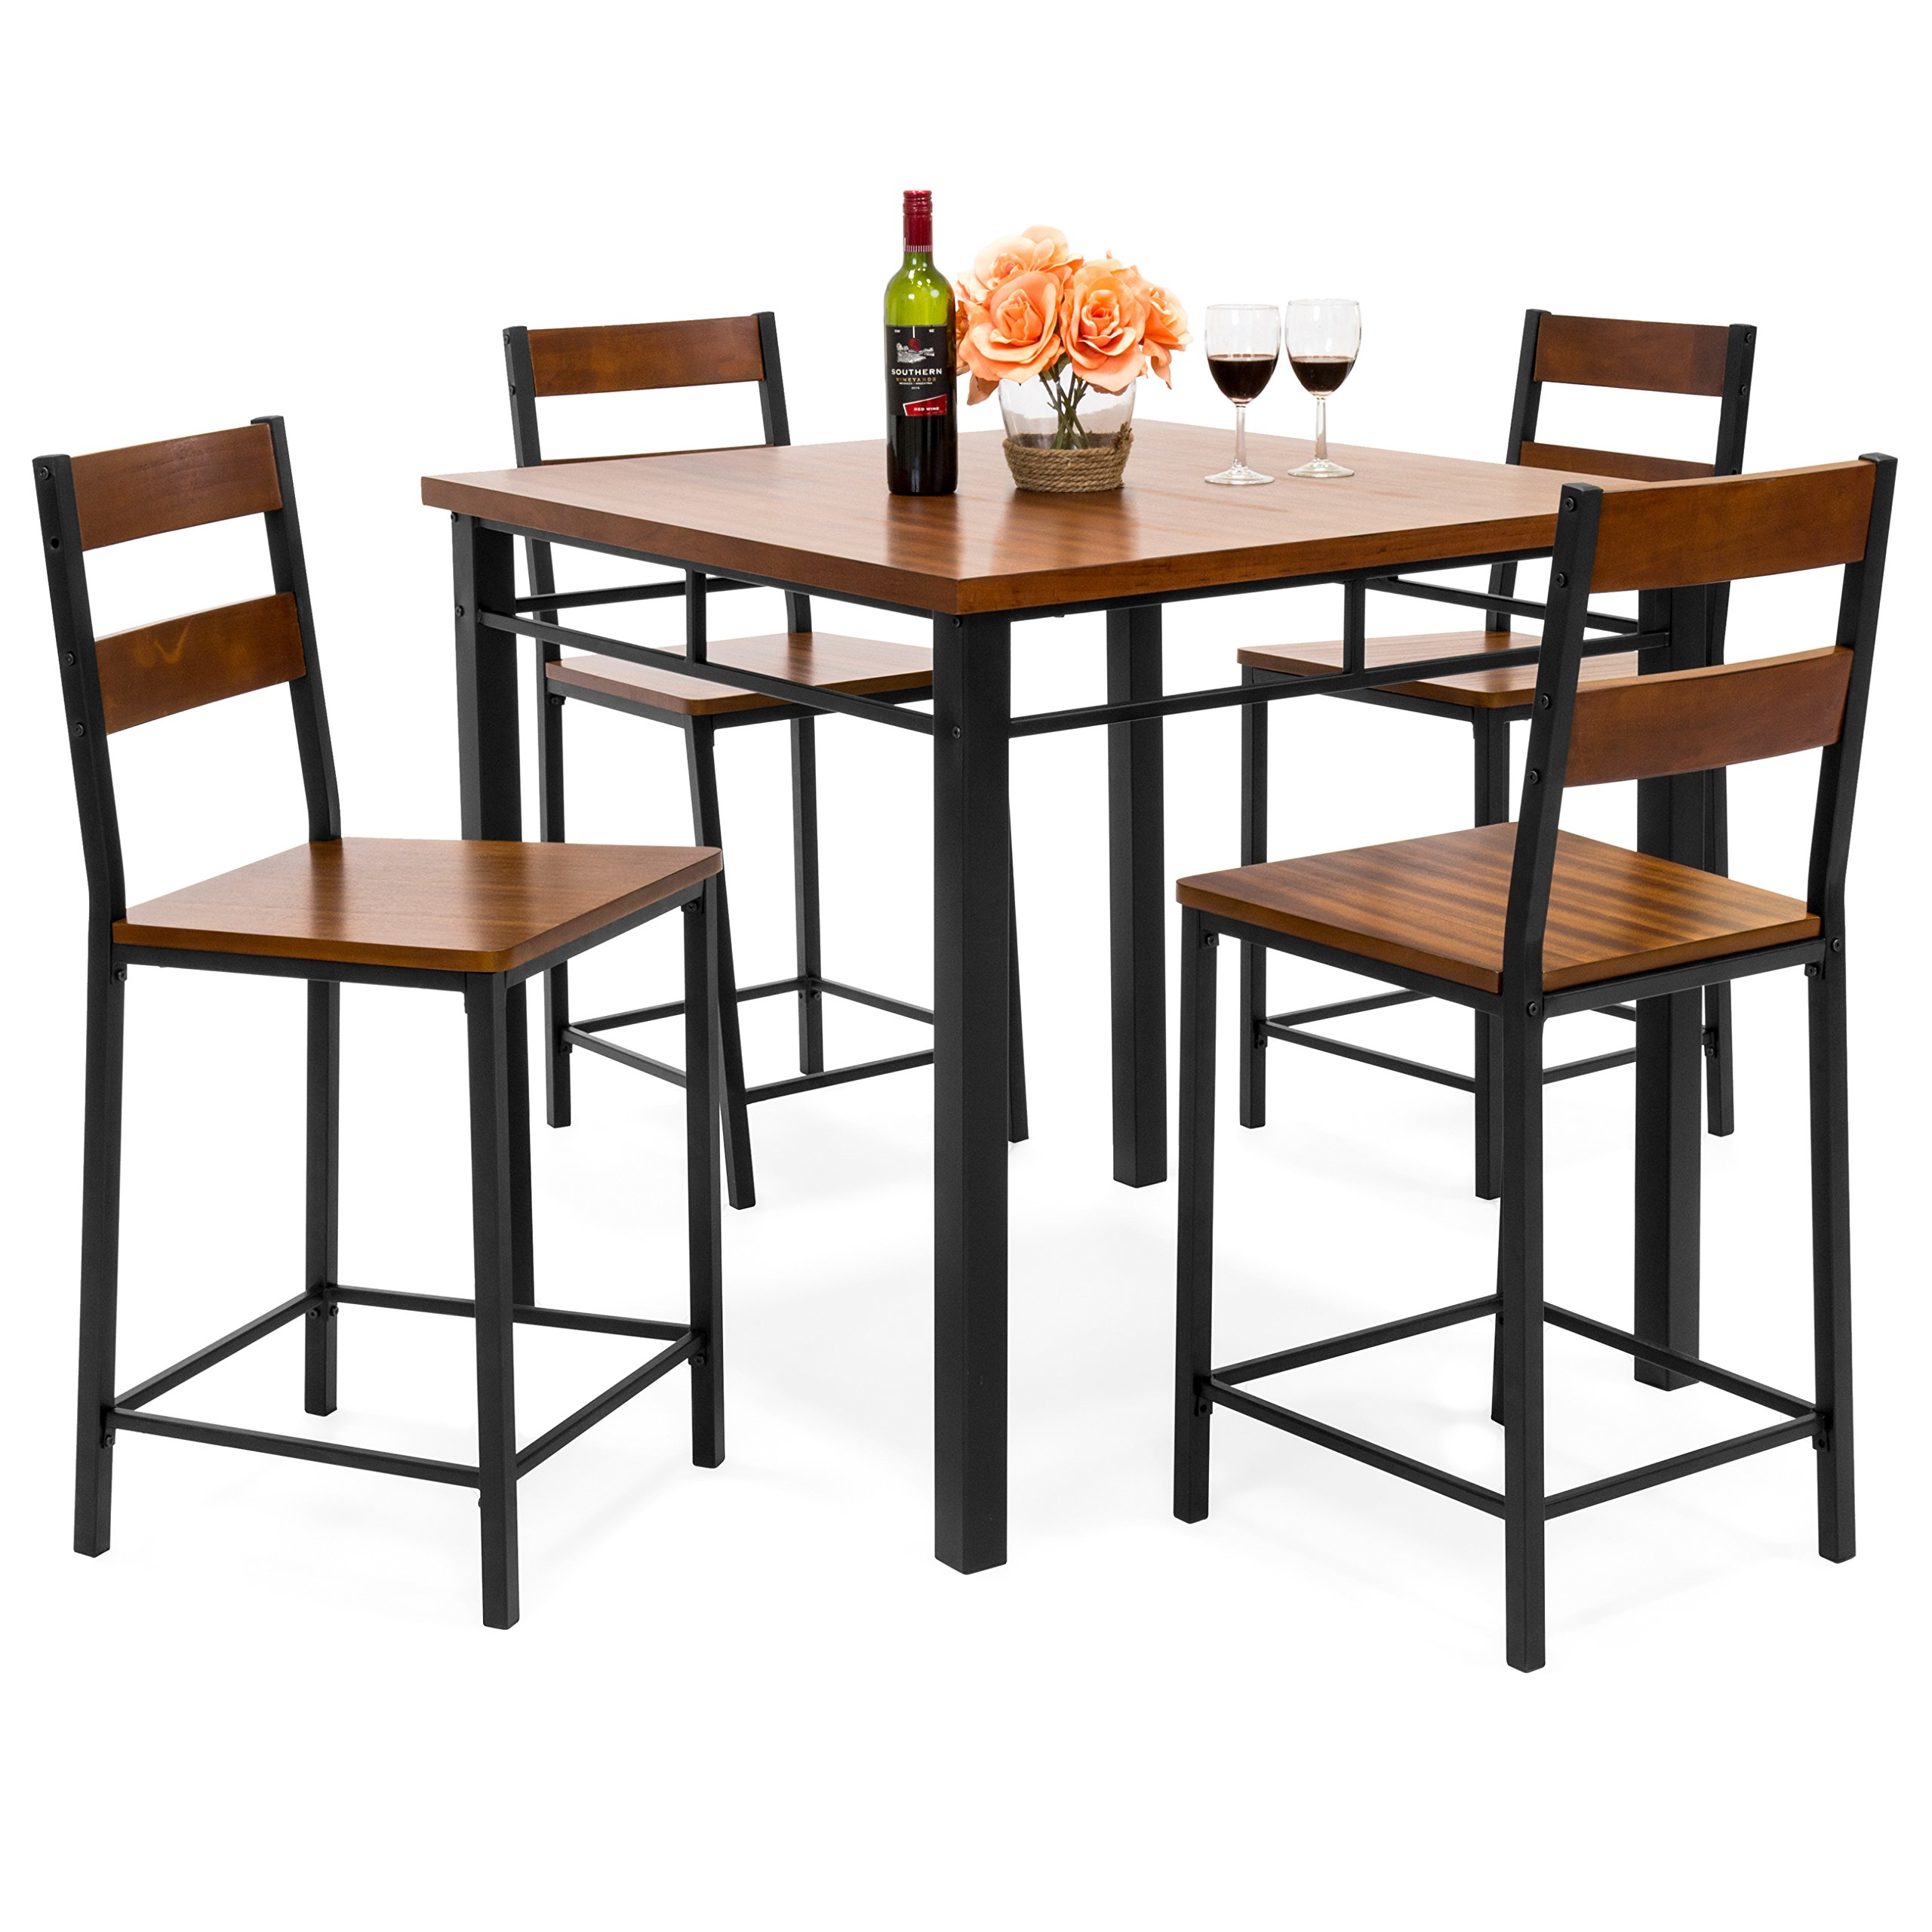 Best Choice Products 5-Piece Vintage Oak Counter Height Table Dining Set w/Chairs (Brown) by Best Choice Products